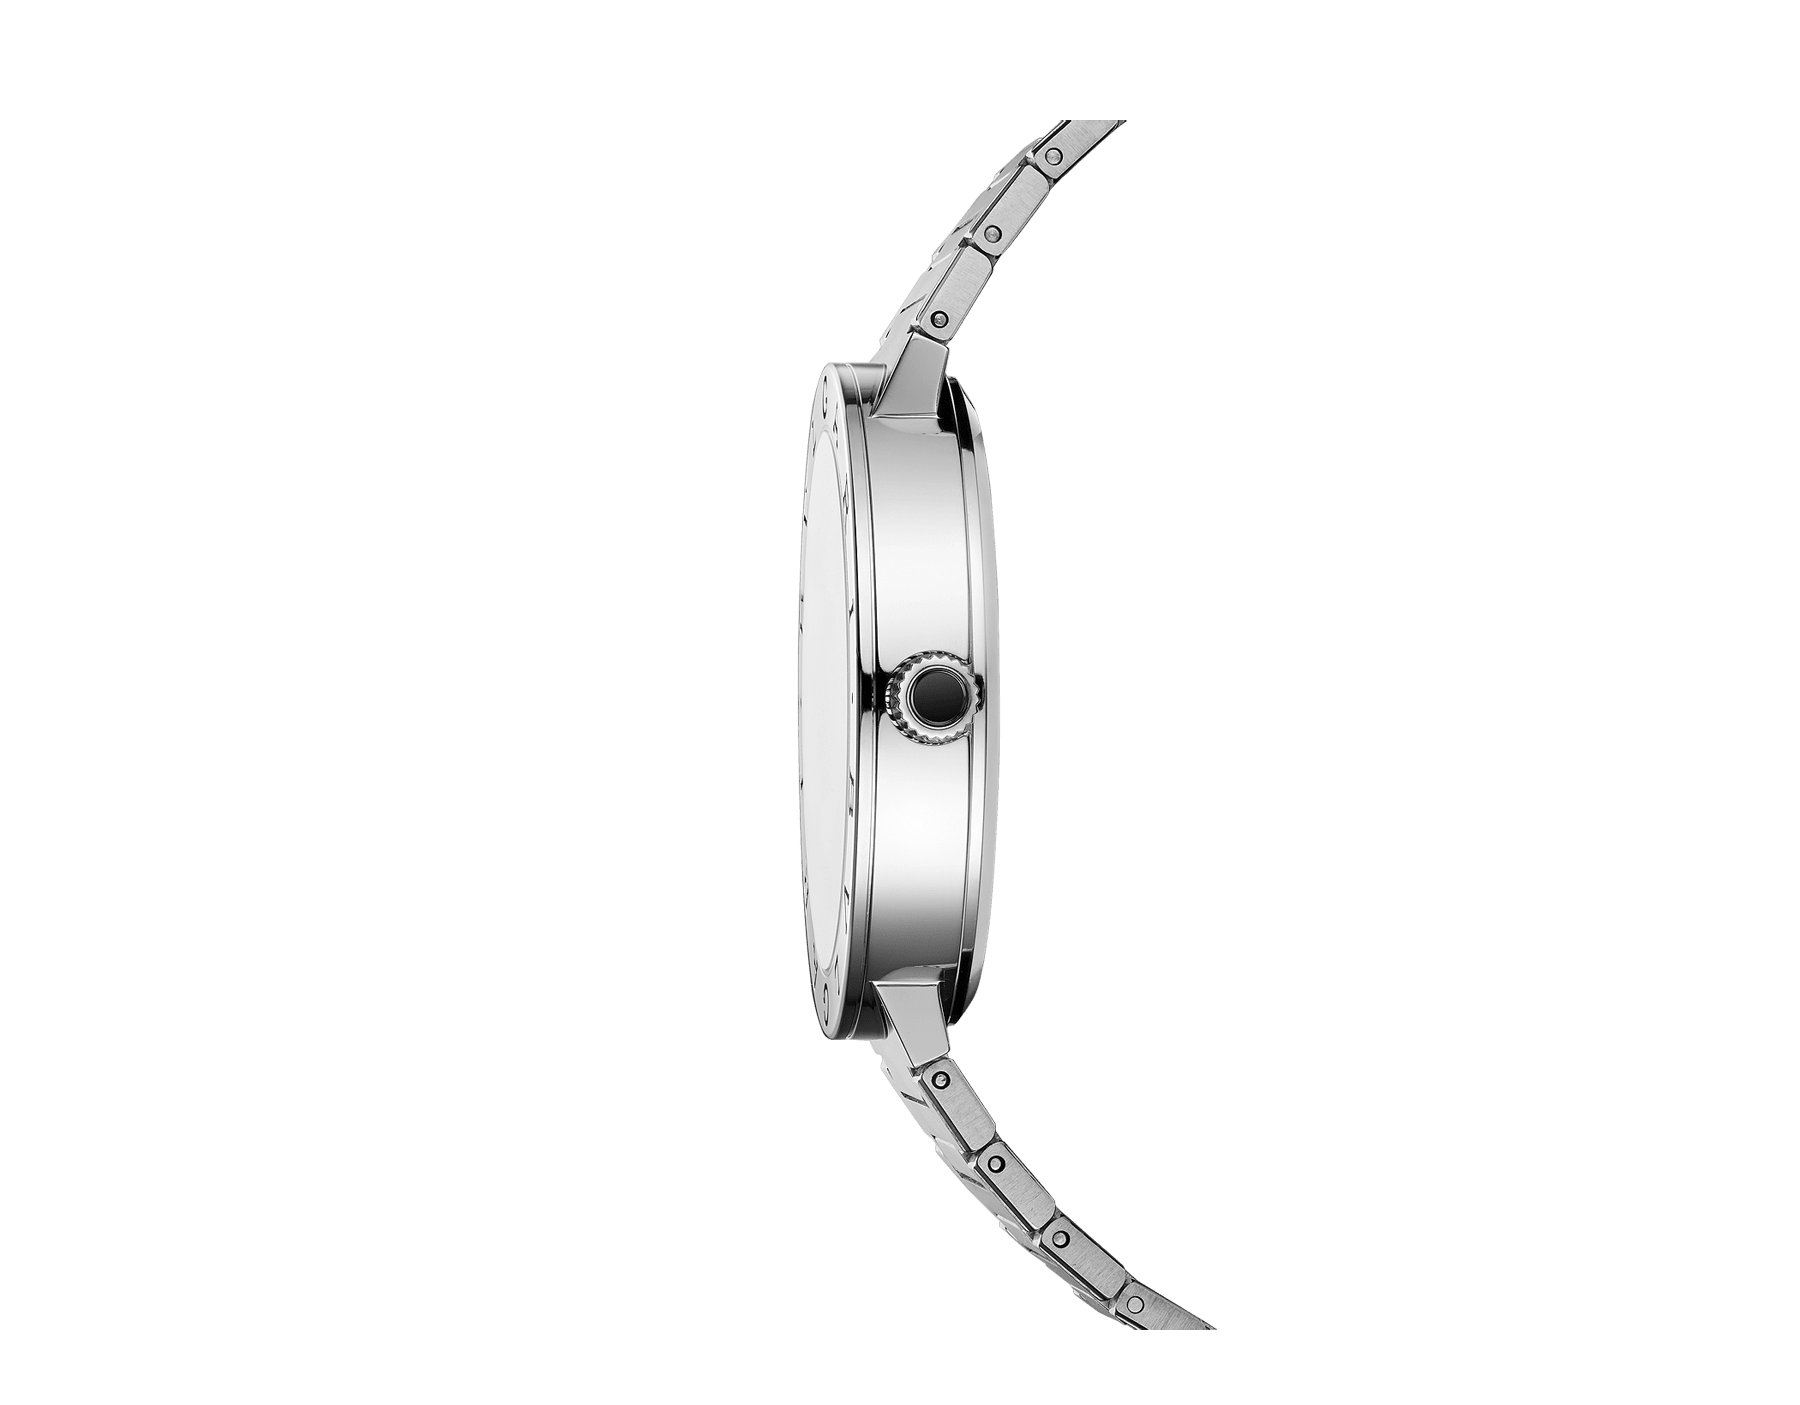 BVLGARI BVLGARI Solotempo watch with mechanical manufacture movement, automatic winding and date, stainless steel case and bracelet, stainless steel bezel engraved with double logo and black dial 102928 image 2